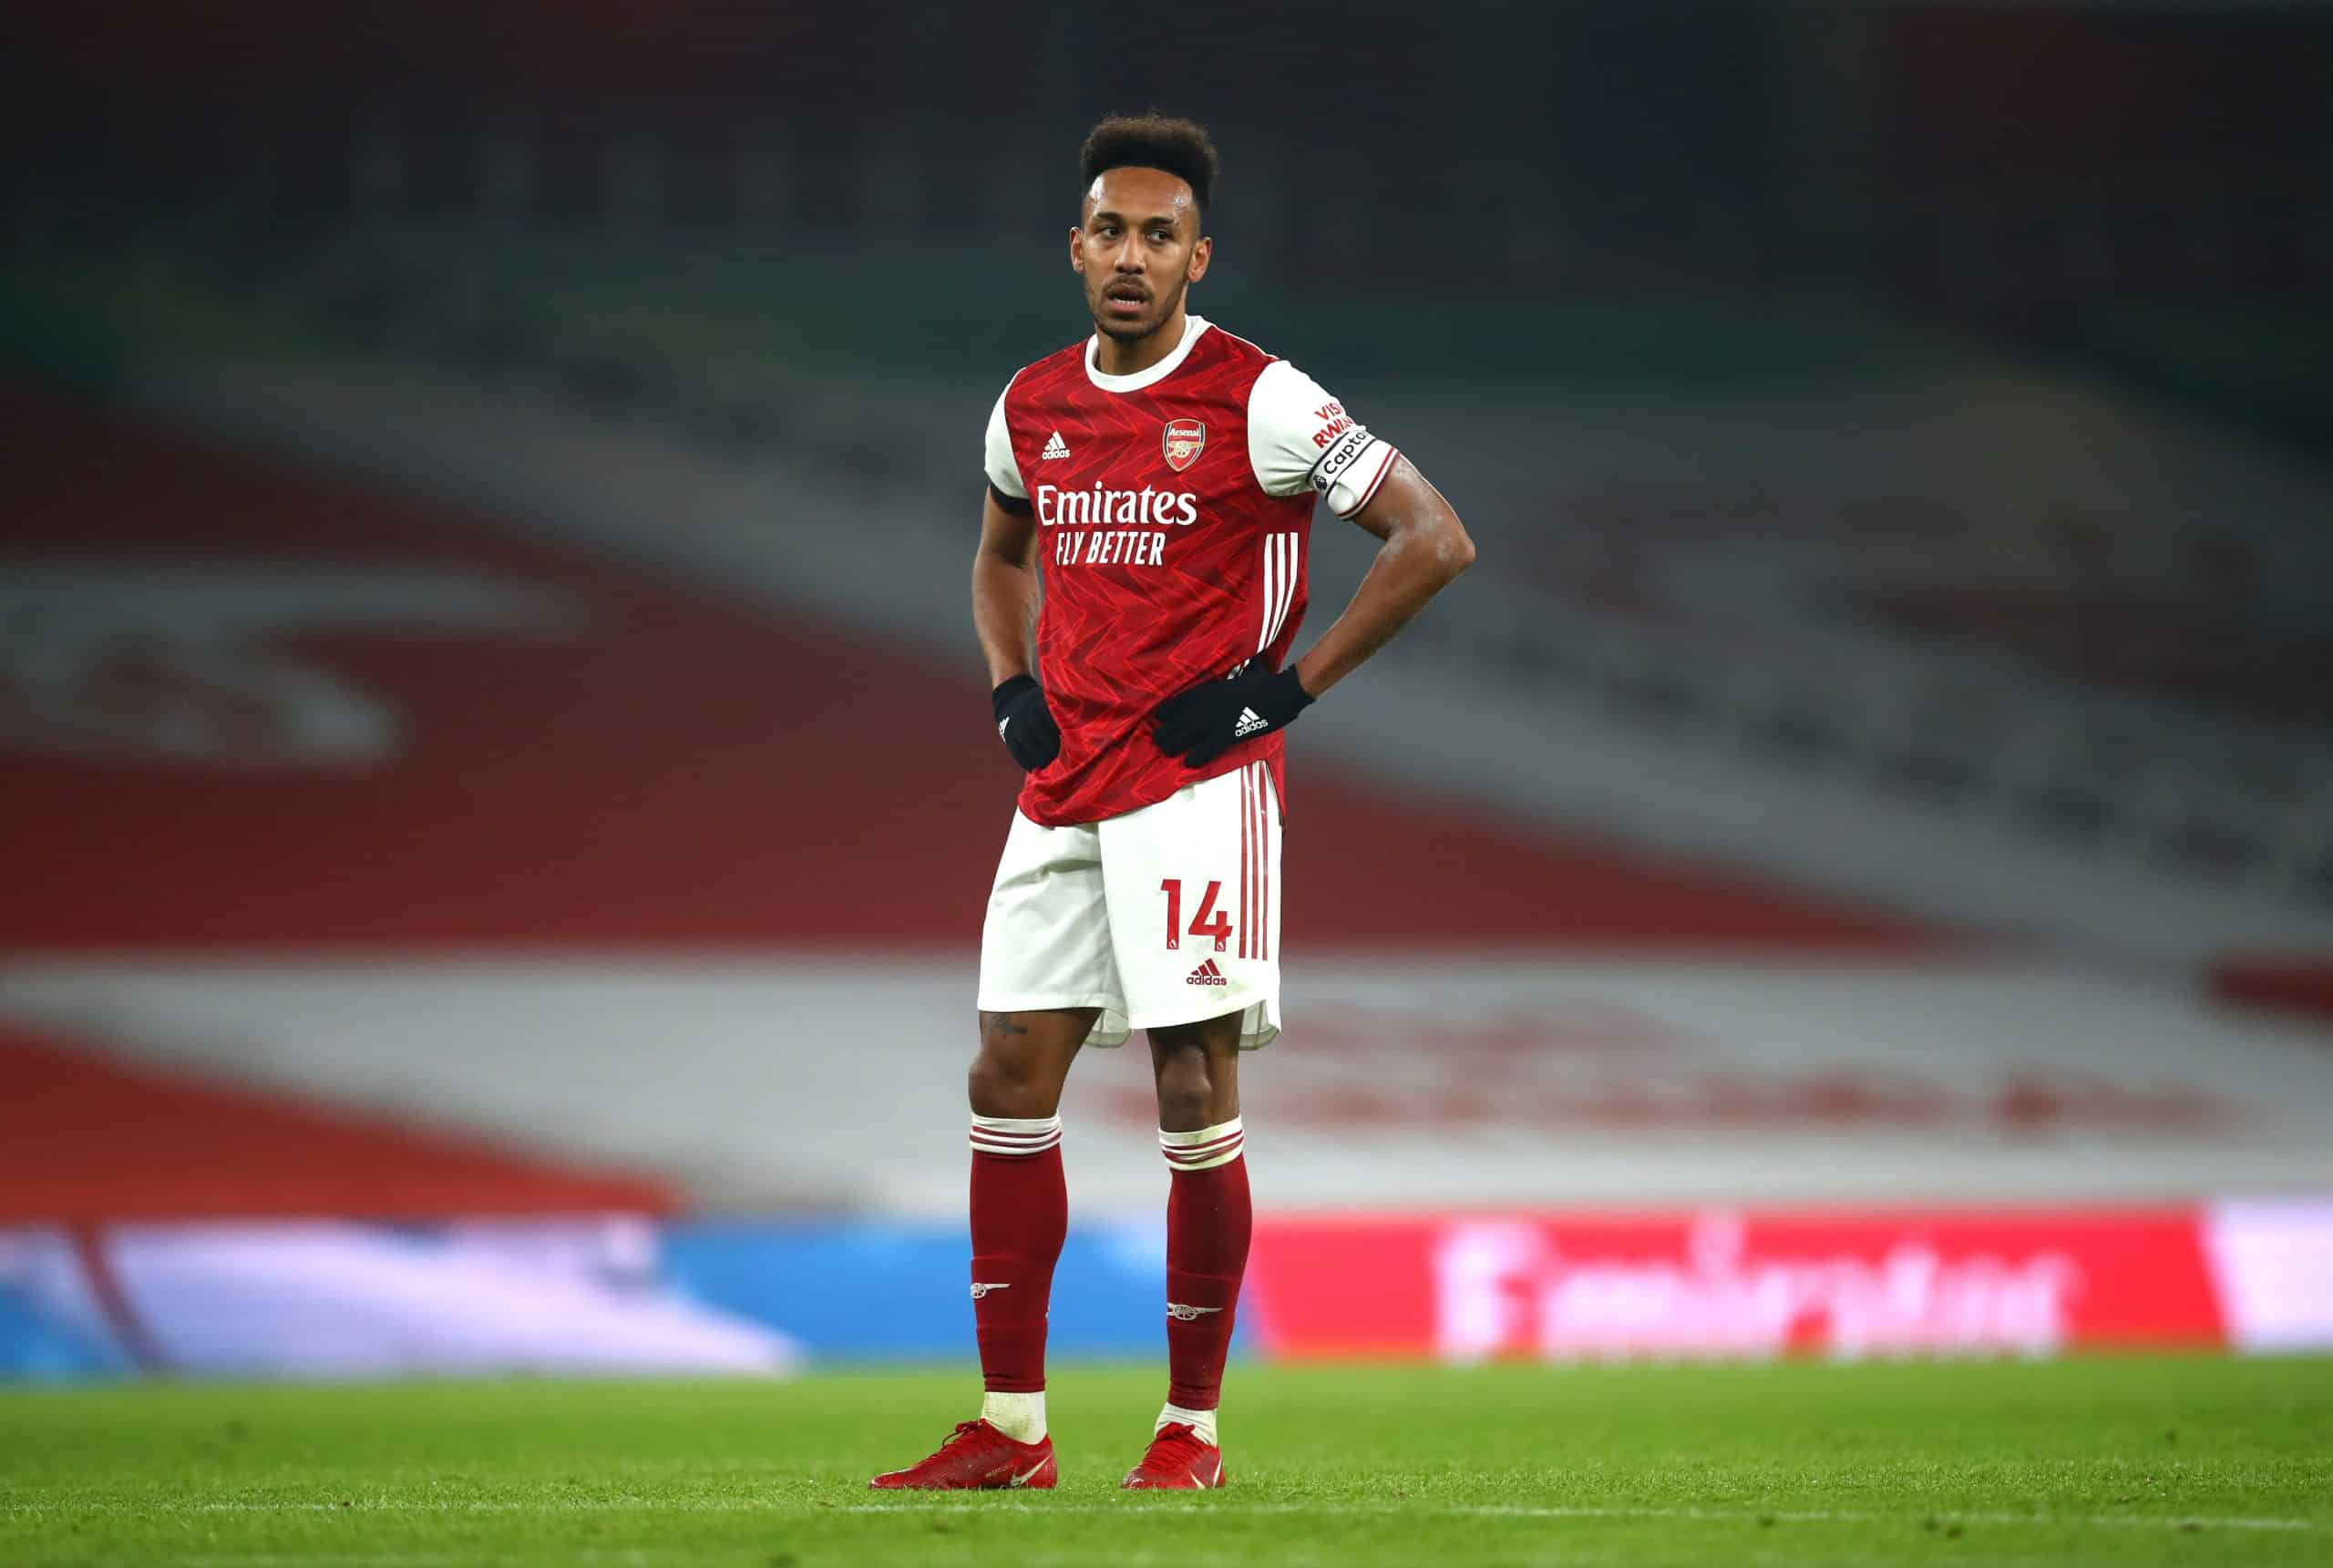 Mikel Arteta on chances of Aubameyang featuring for Arsenal on Tuesday following absence vs Southampton - 101 great goals